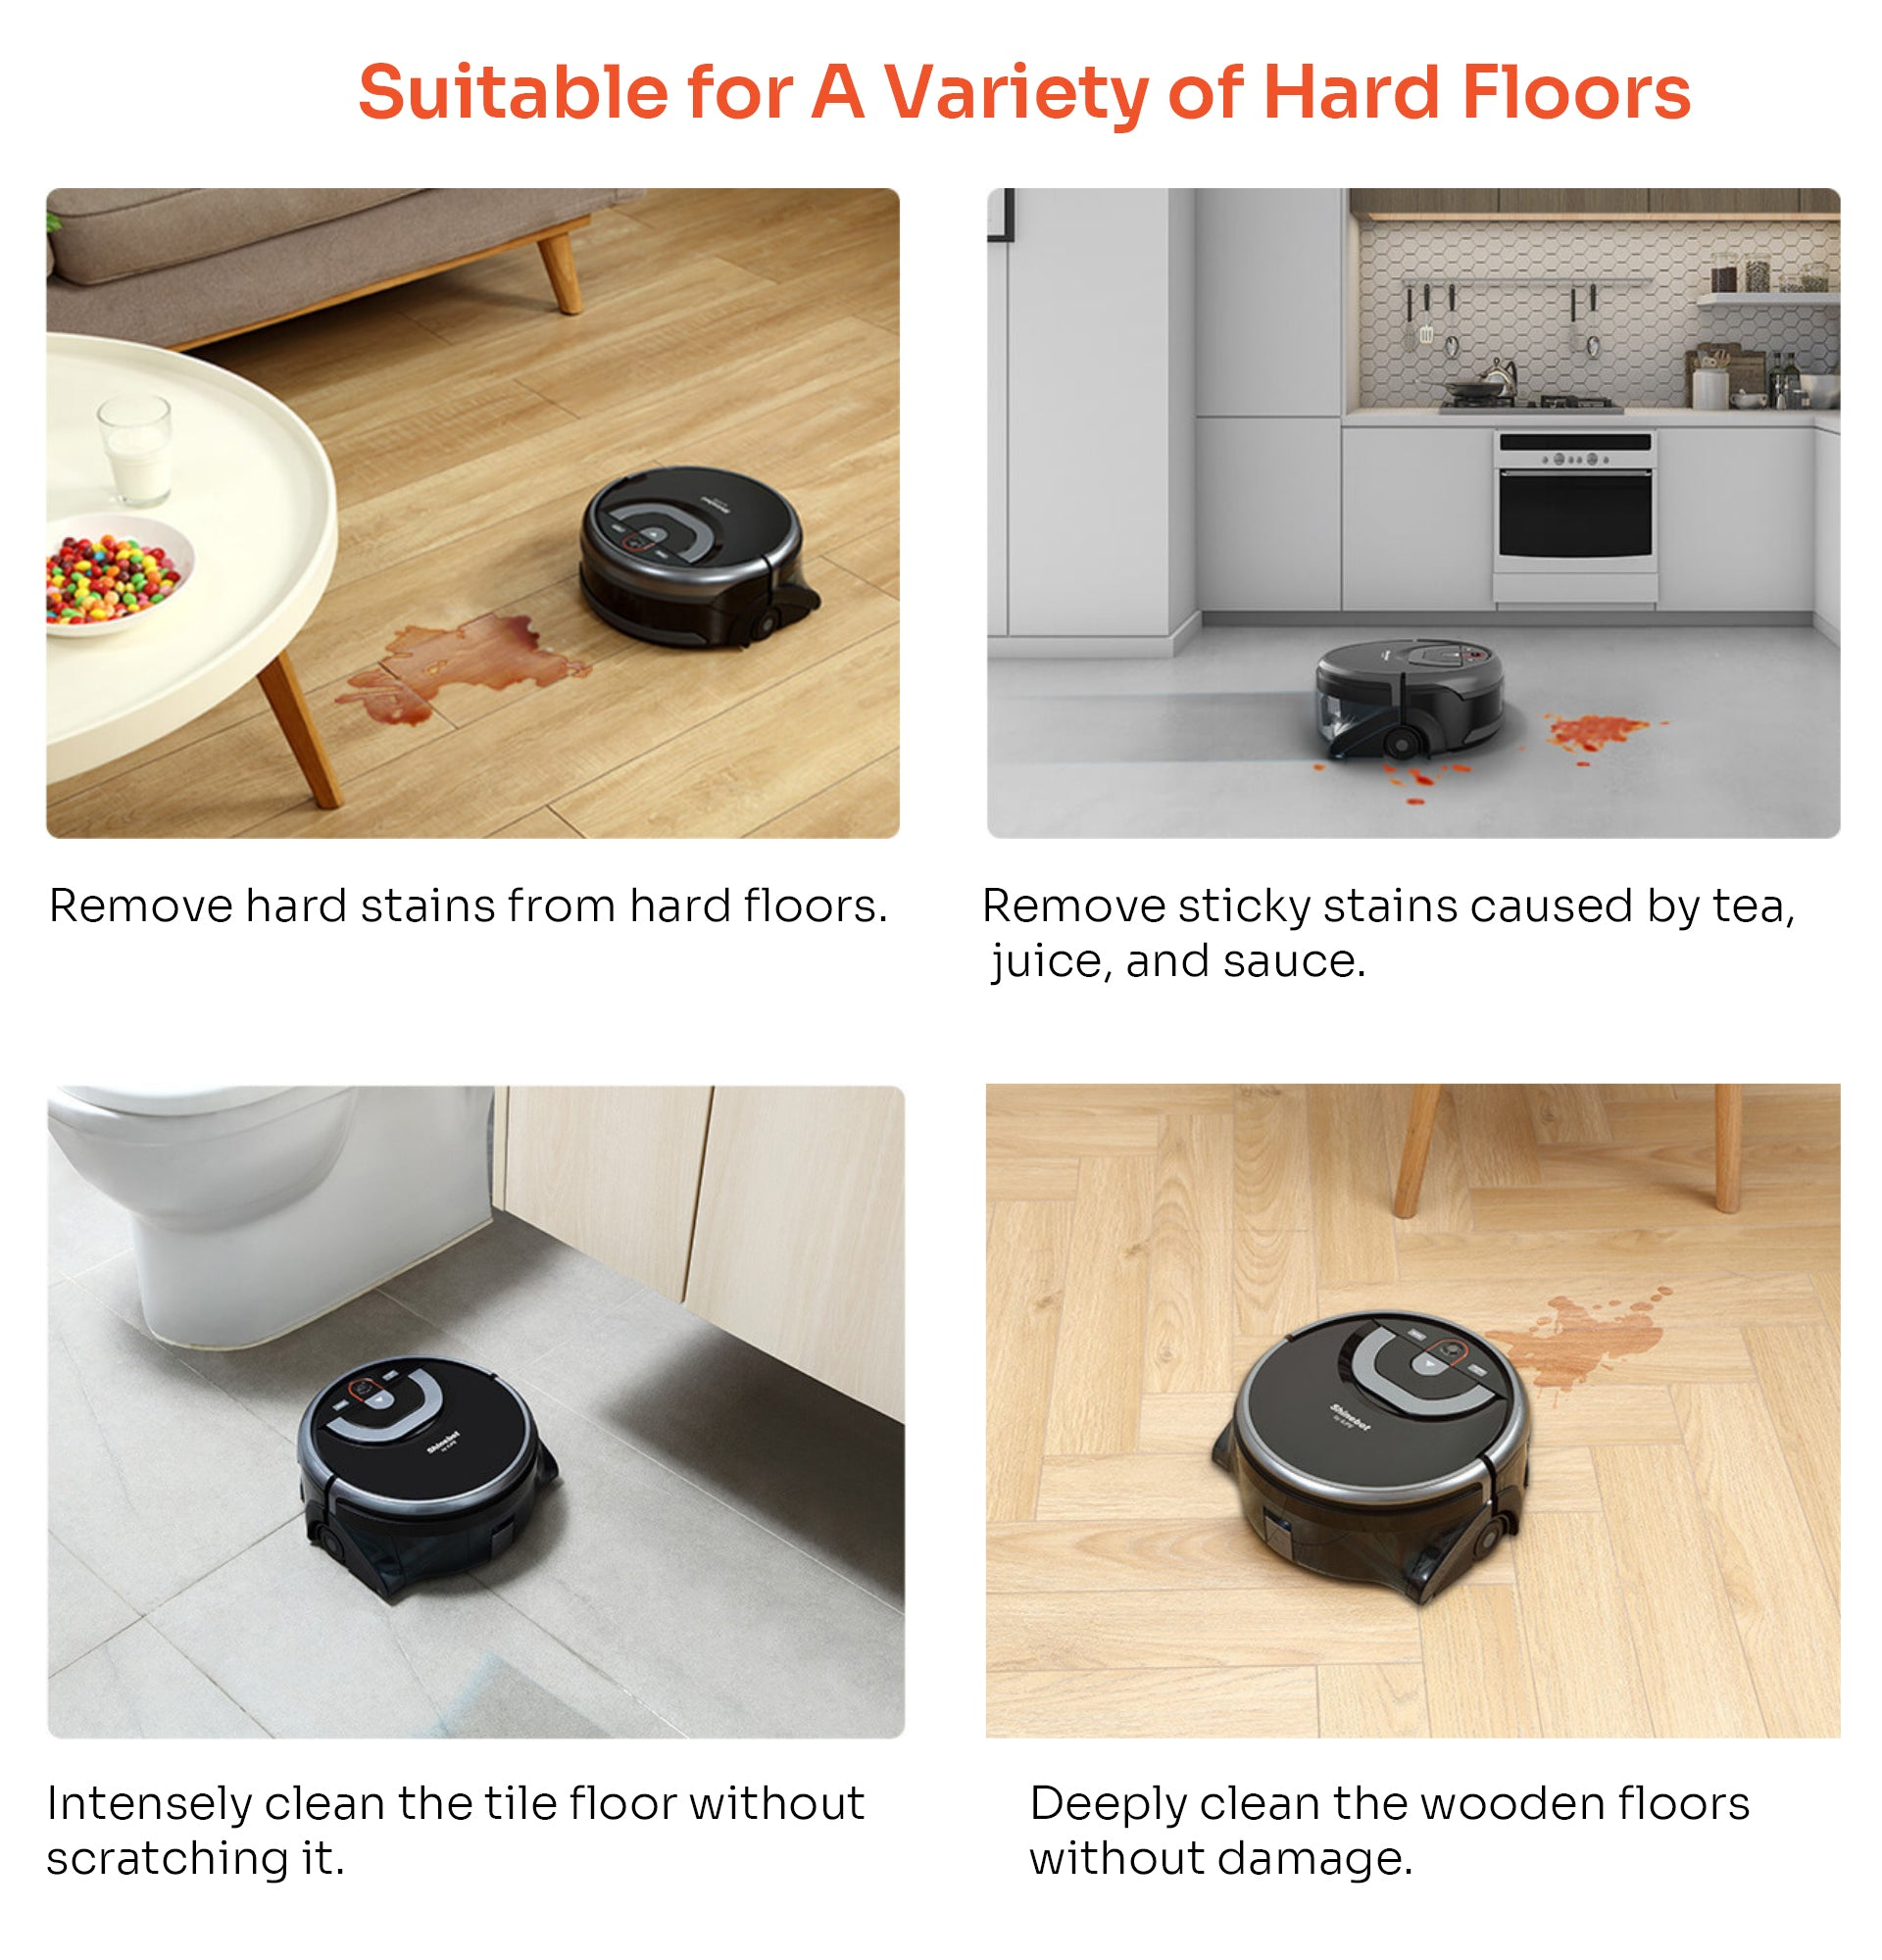 Suitable for A Variety of Hard Floors